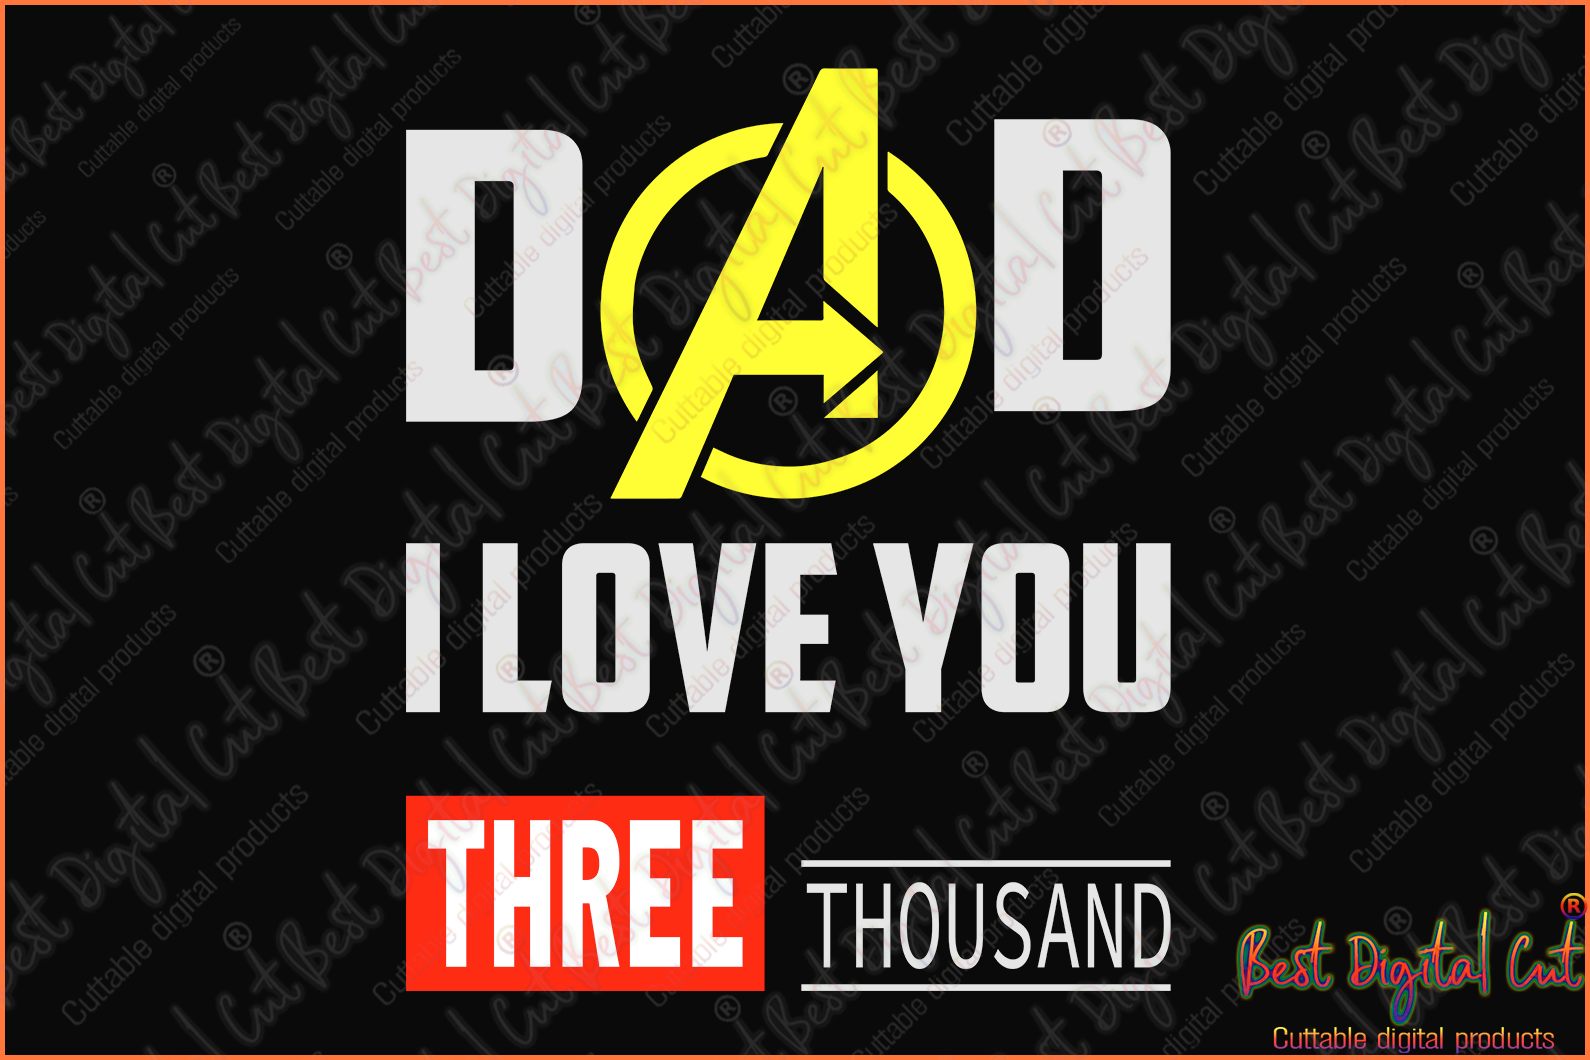 Dad  I love you three thousand svg,fathers day gift, gift for father, happy fathers day,father 2020, father's day 2020,dad gift, dad no 1, dad number 1, fathers day, gift for dad, love dad, dad shirt,best father gift, best father svg,father shirt